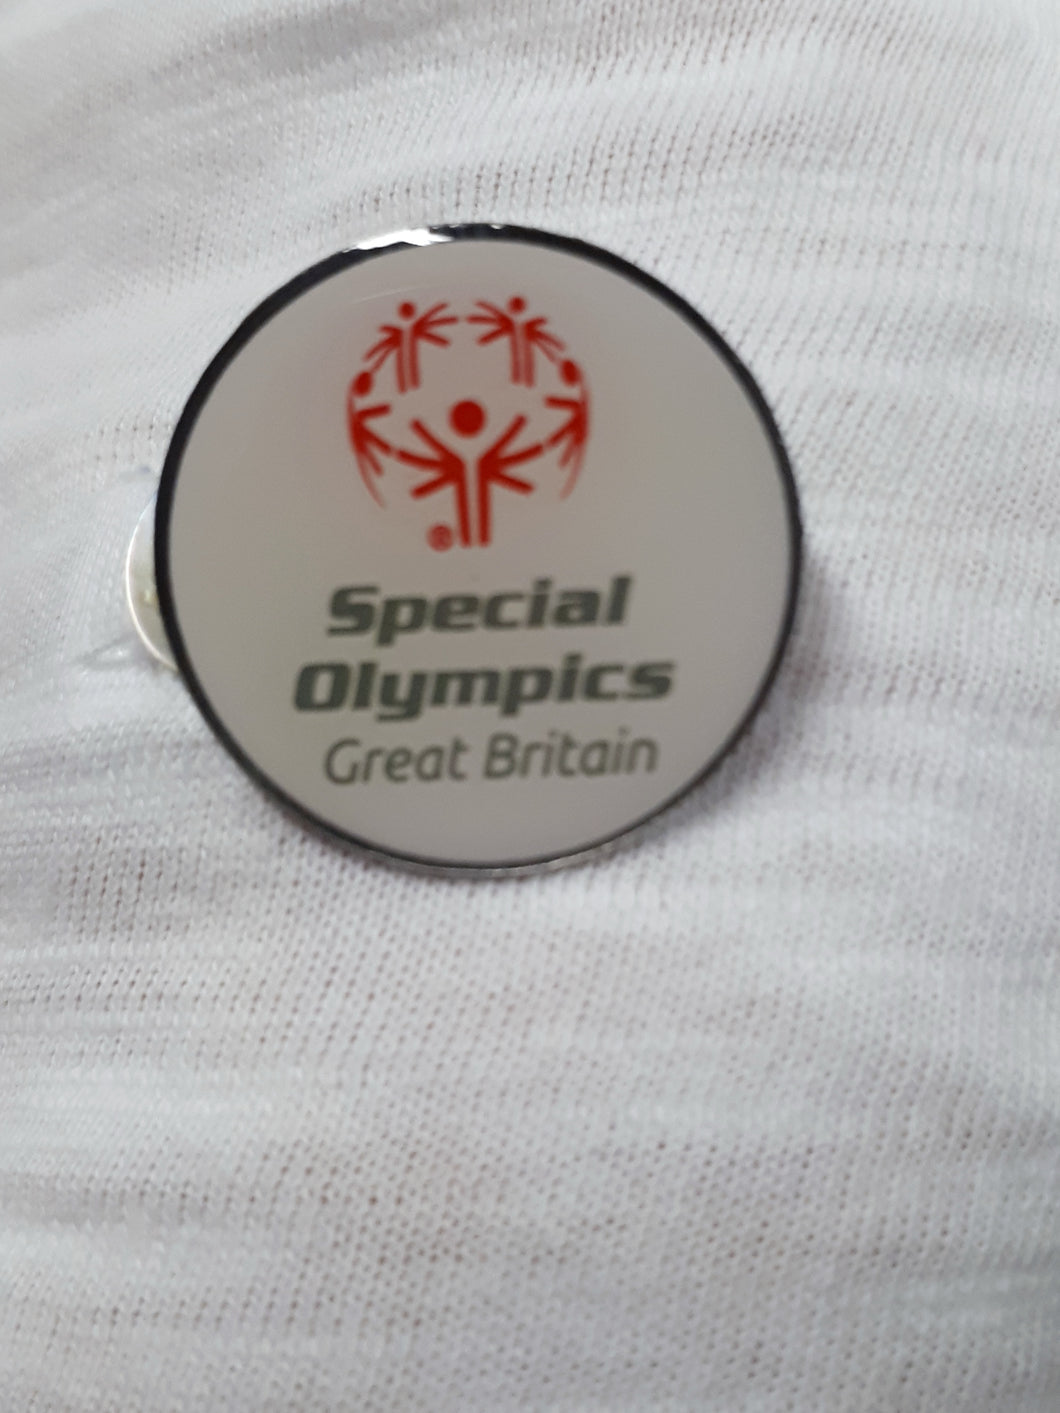 SOGB Round Pin Badge